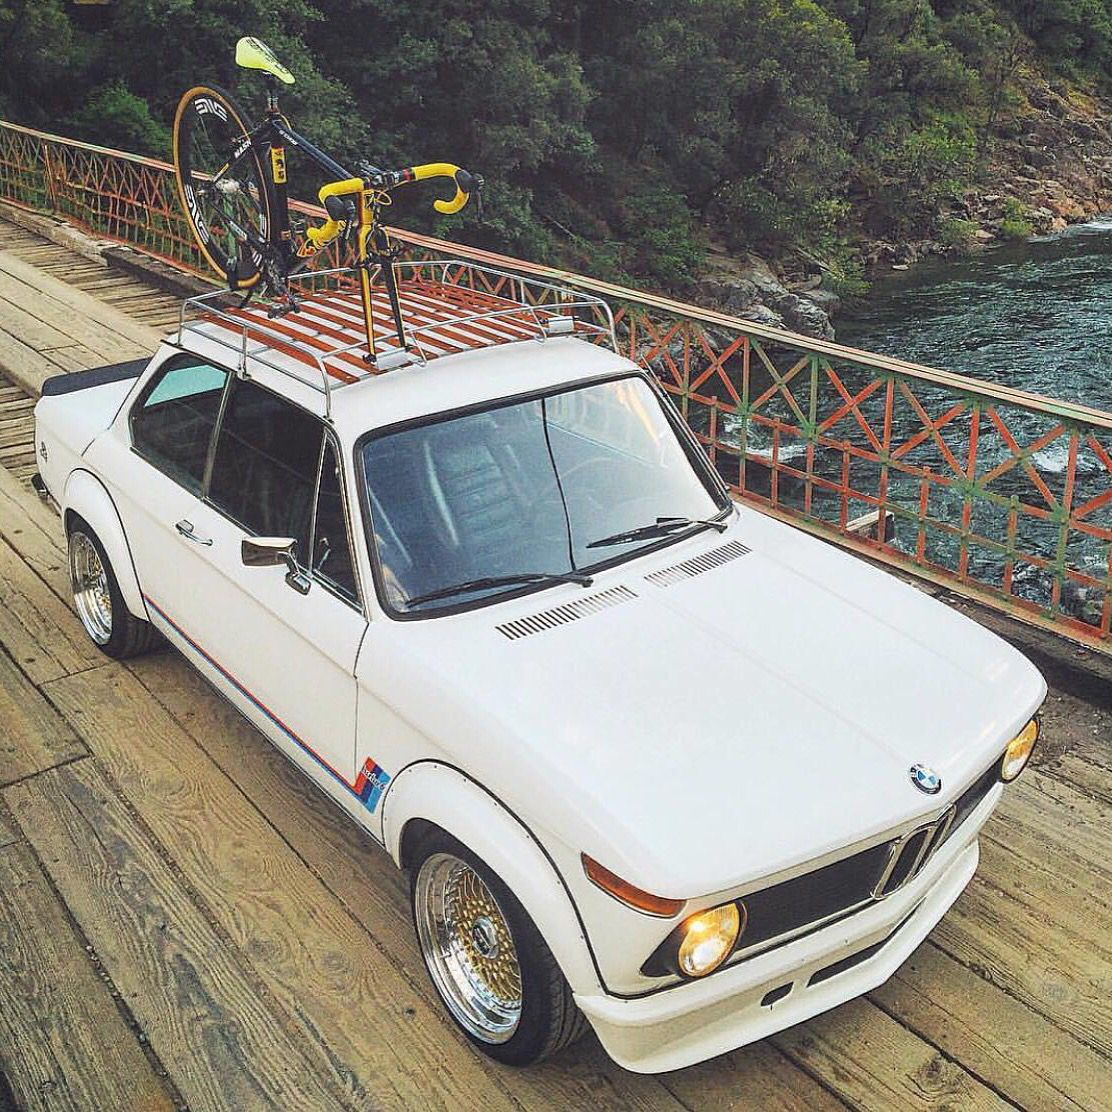 2002 #dadriver #BMW #2002Turbo6 @bmwespana